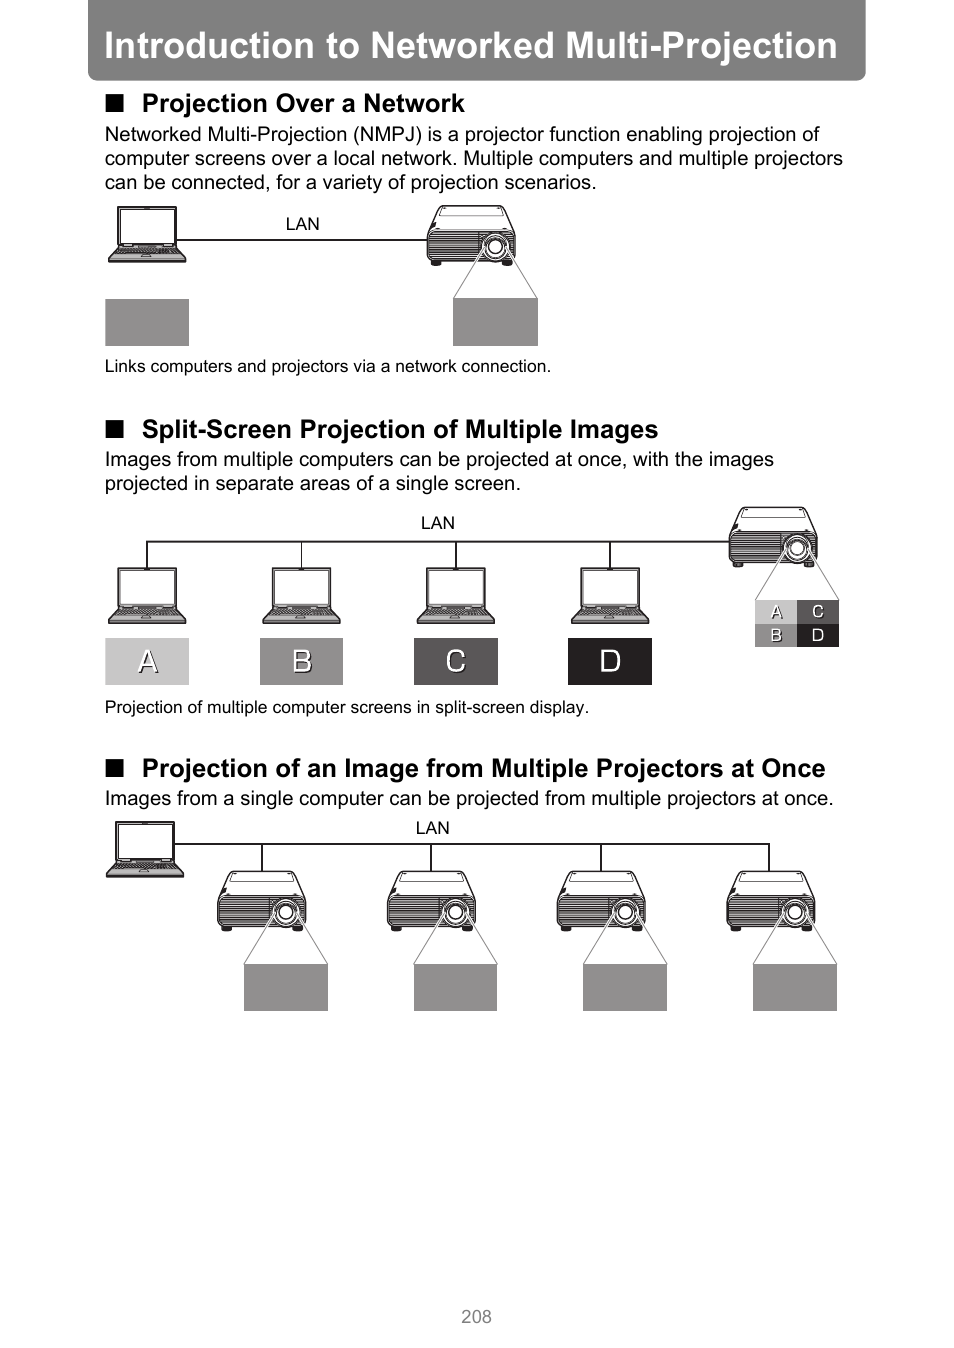 Introduction to networked multi-projection, Projection over a network, Split-screen projection of multiple images | P208 | Canon XEED WUX450 User Manual | Page 208 / 314